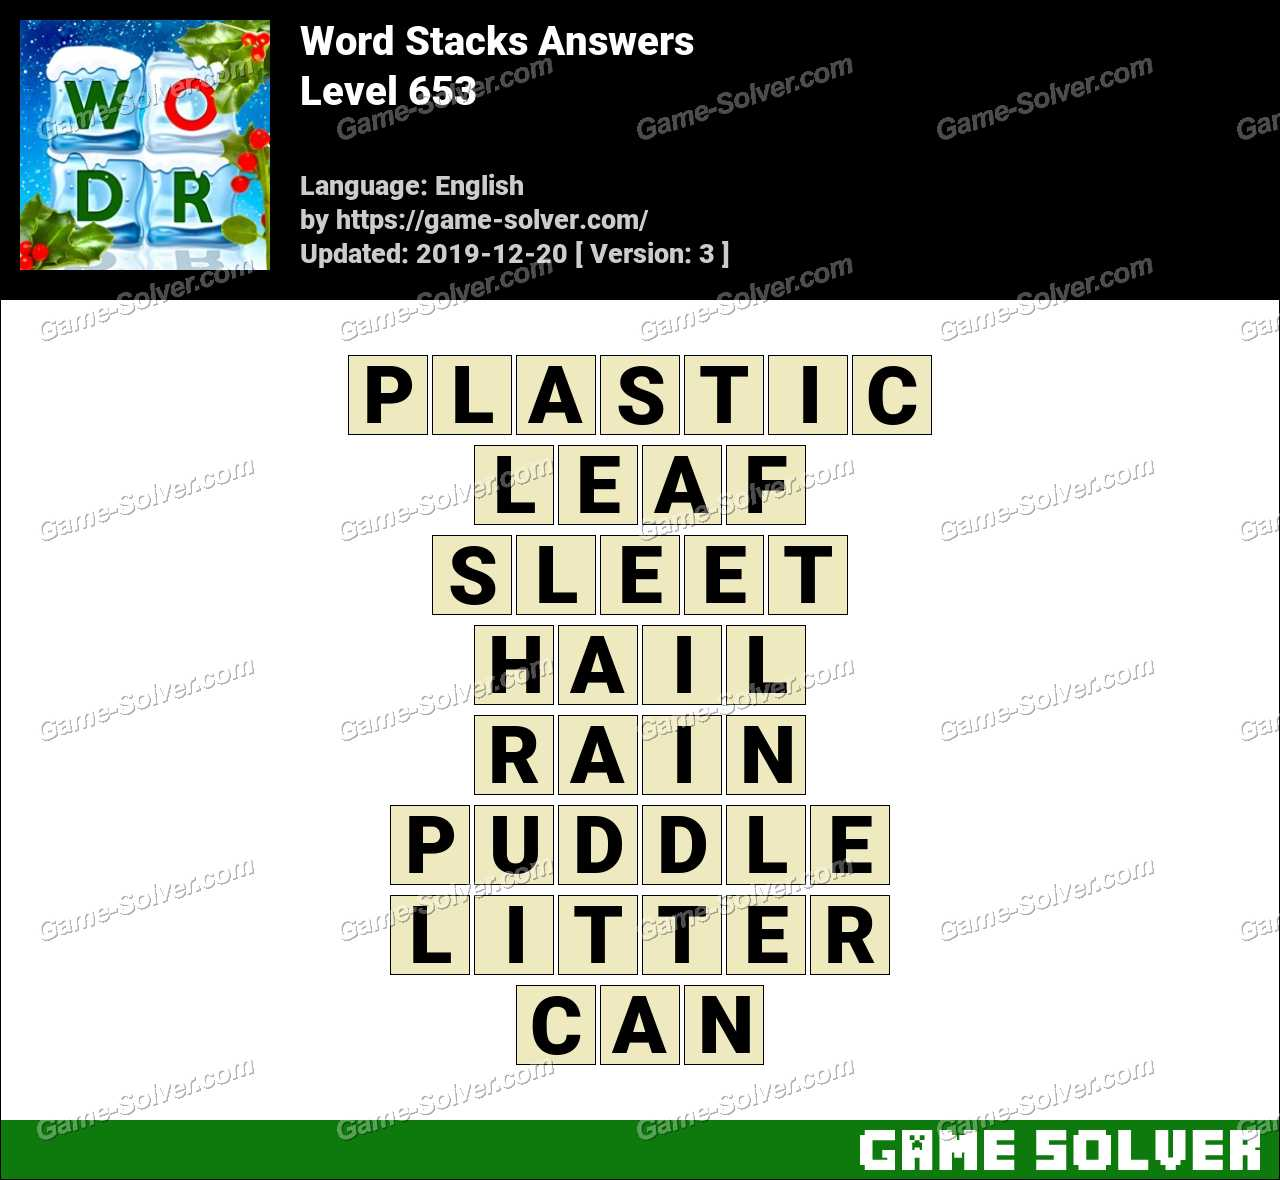 Word Stacks Level 653 Answers